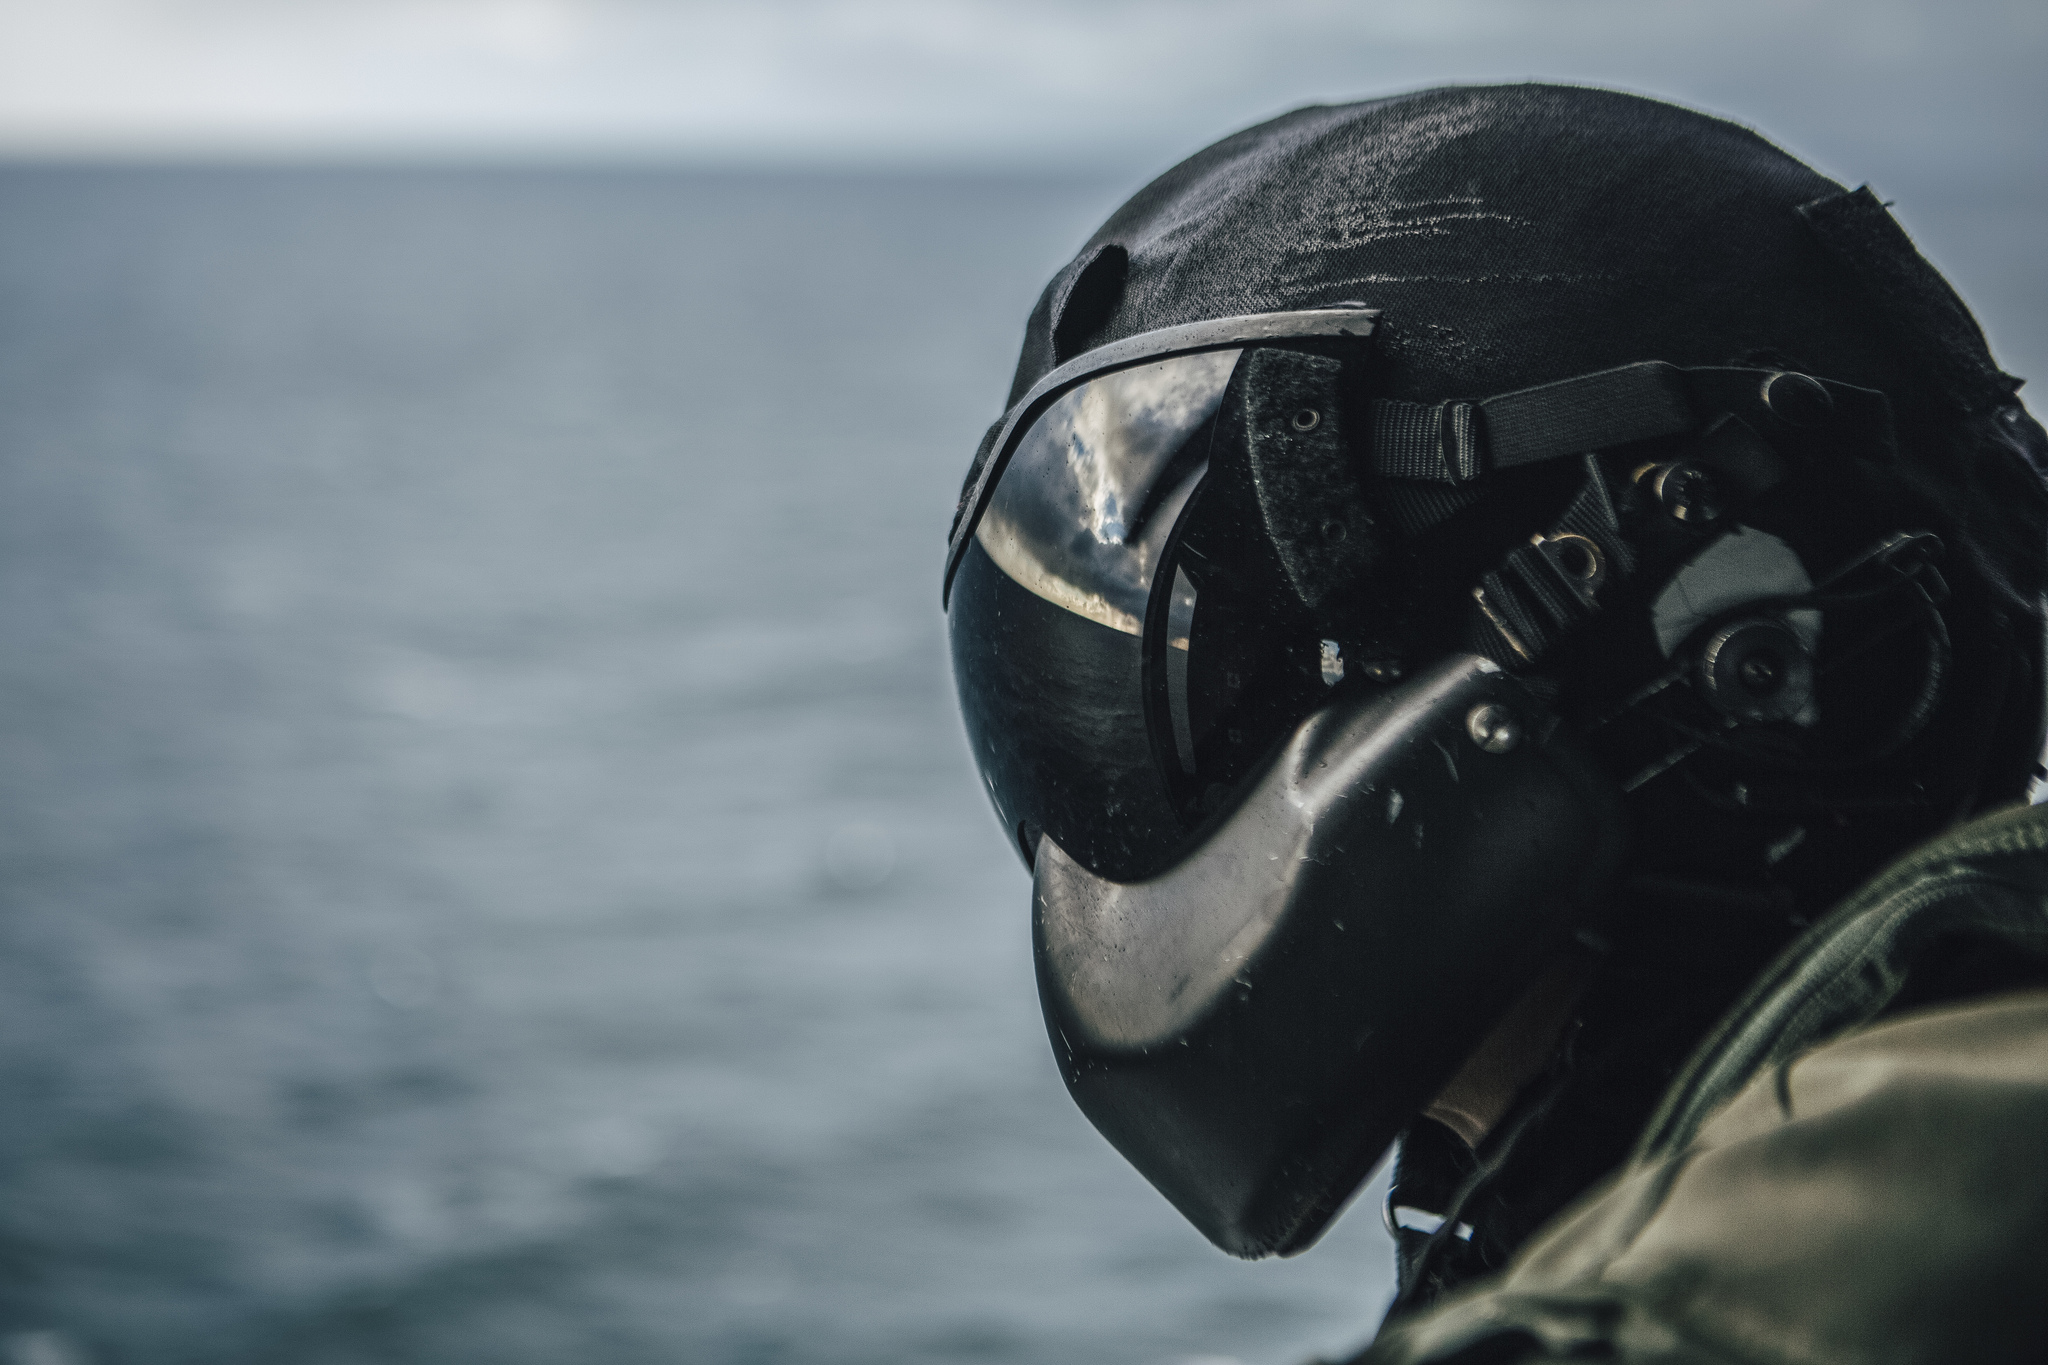 Marine Corps Sgt. Cade Allen, a UH-1Y Venom crew chief, scans the horizon during flight operations in the Pacific Ocean, Feb. 20, 2019. (Lance Cpl. Jason Monty/Marine Corps)